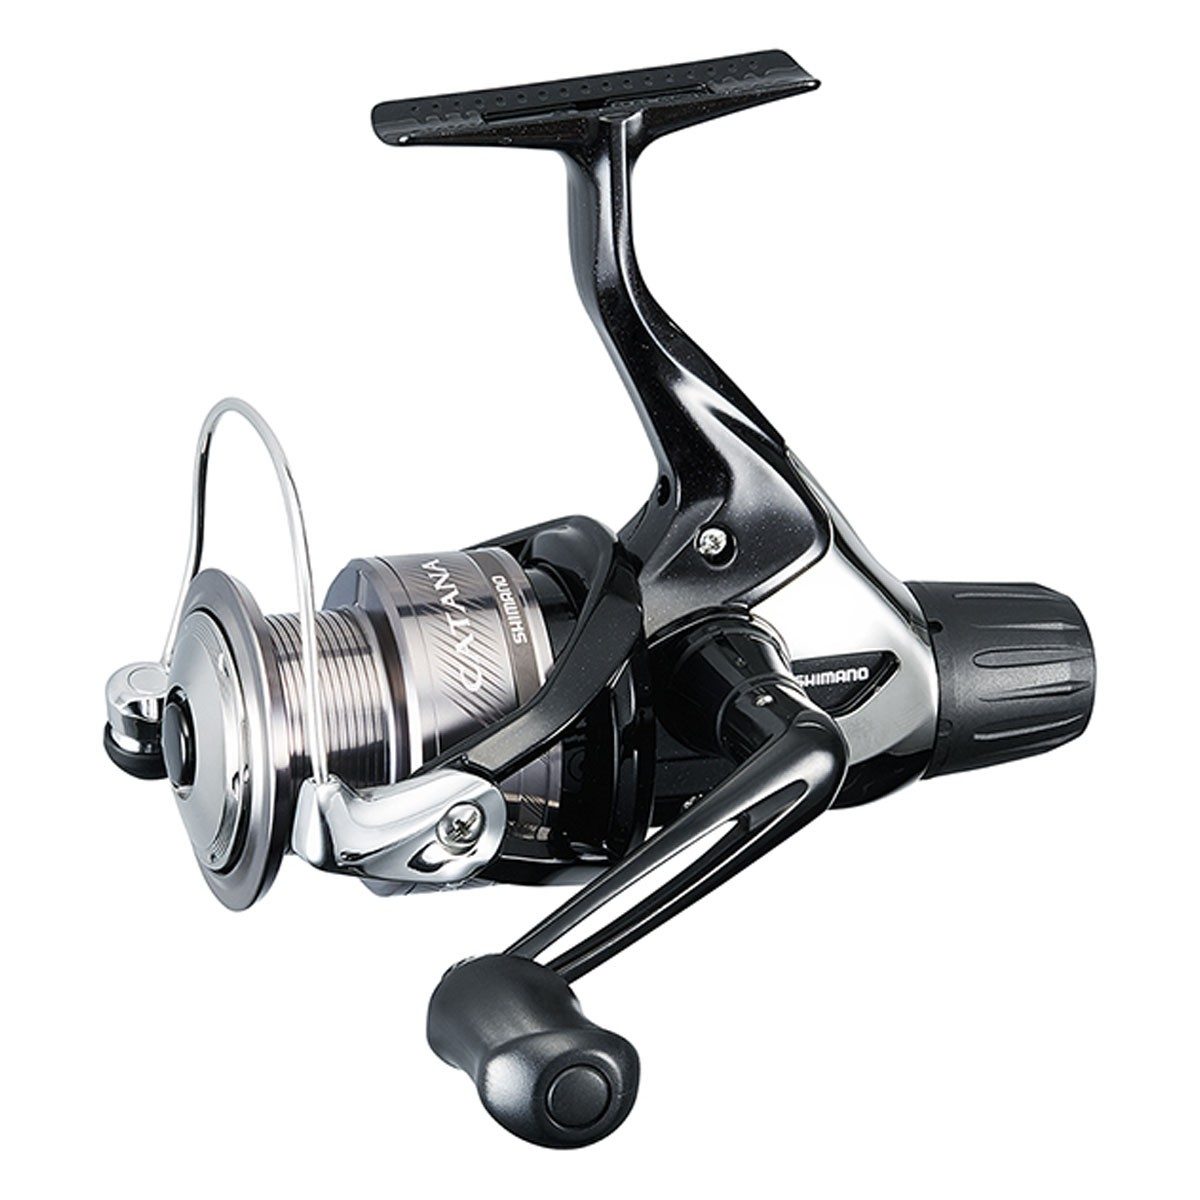 Shimano Catana Fixed spool spinning reel